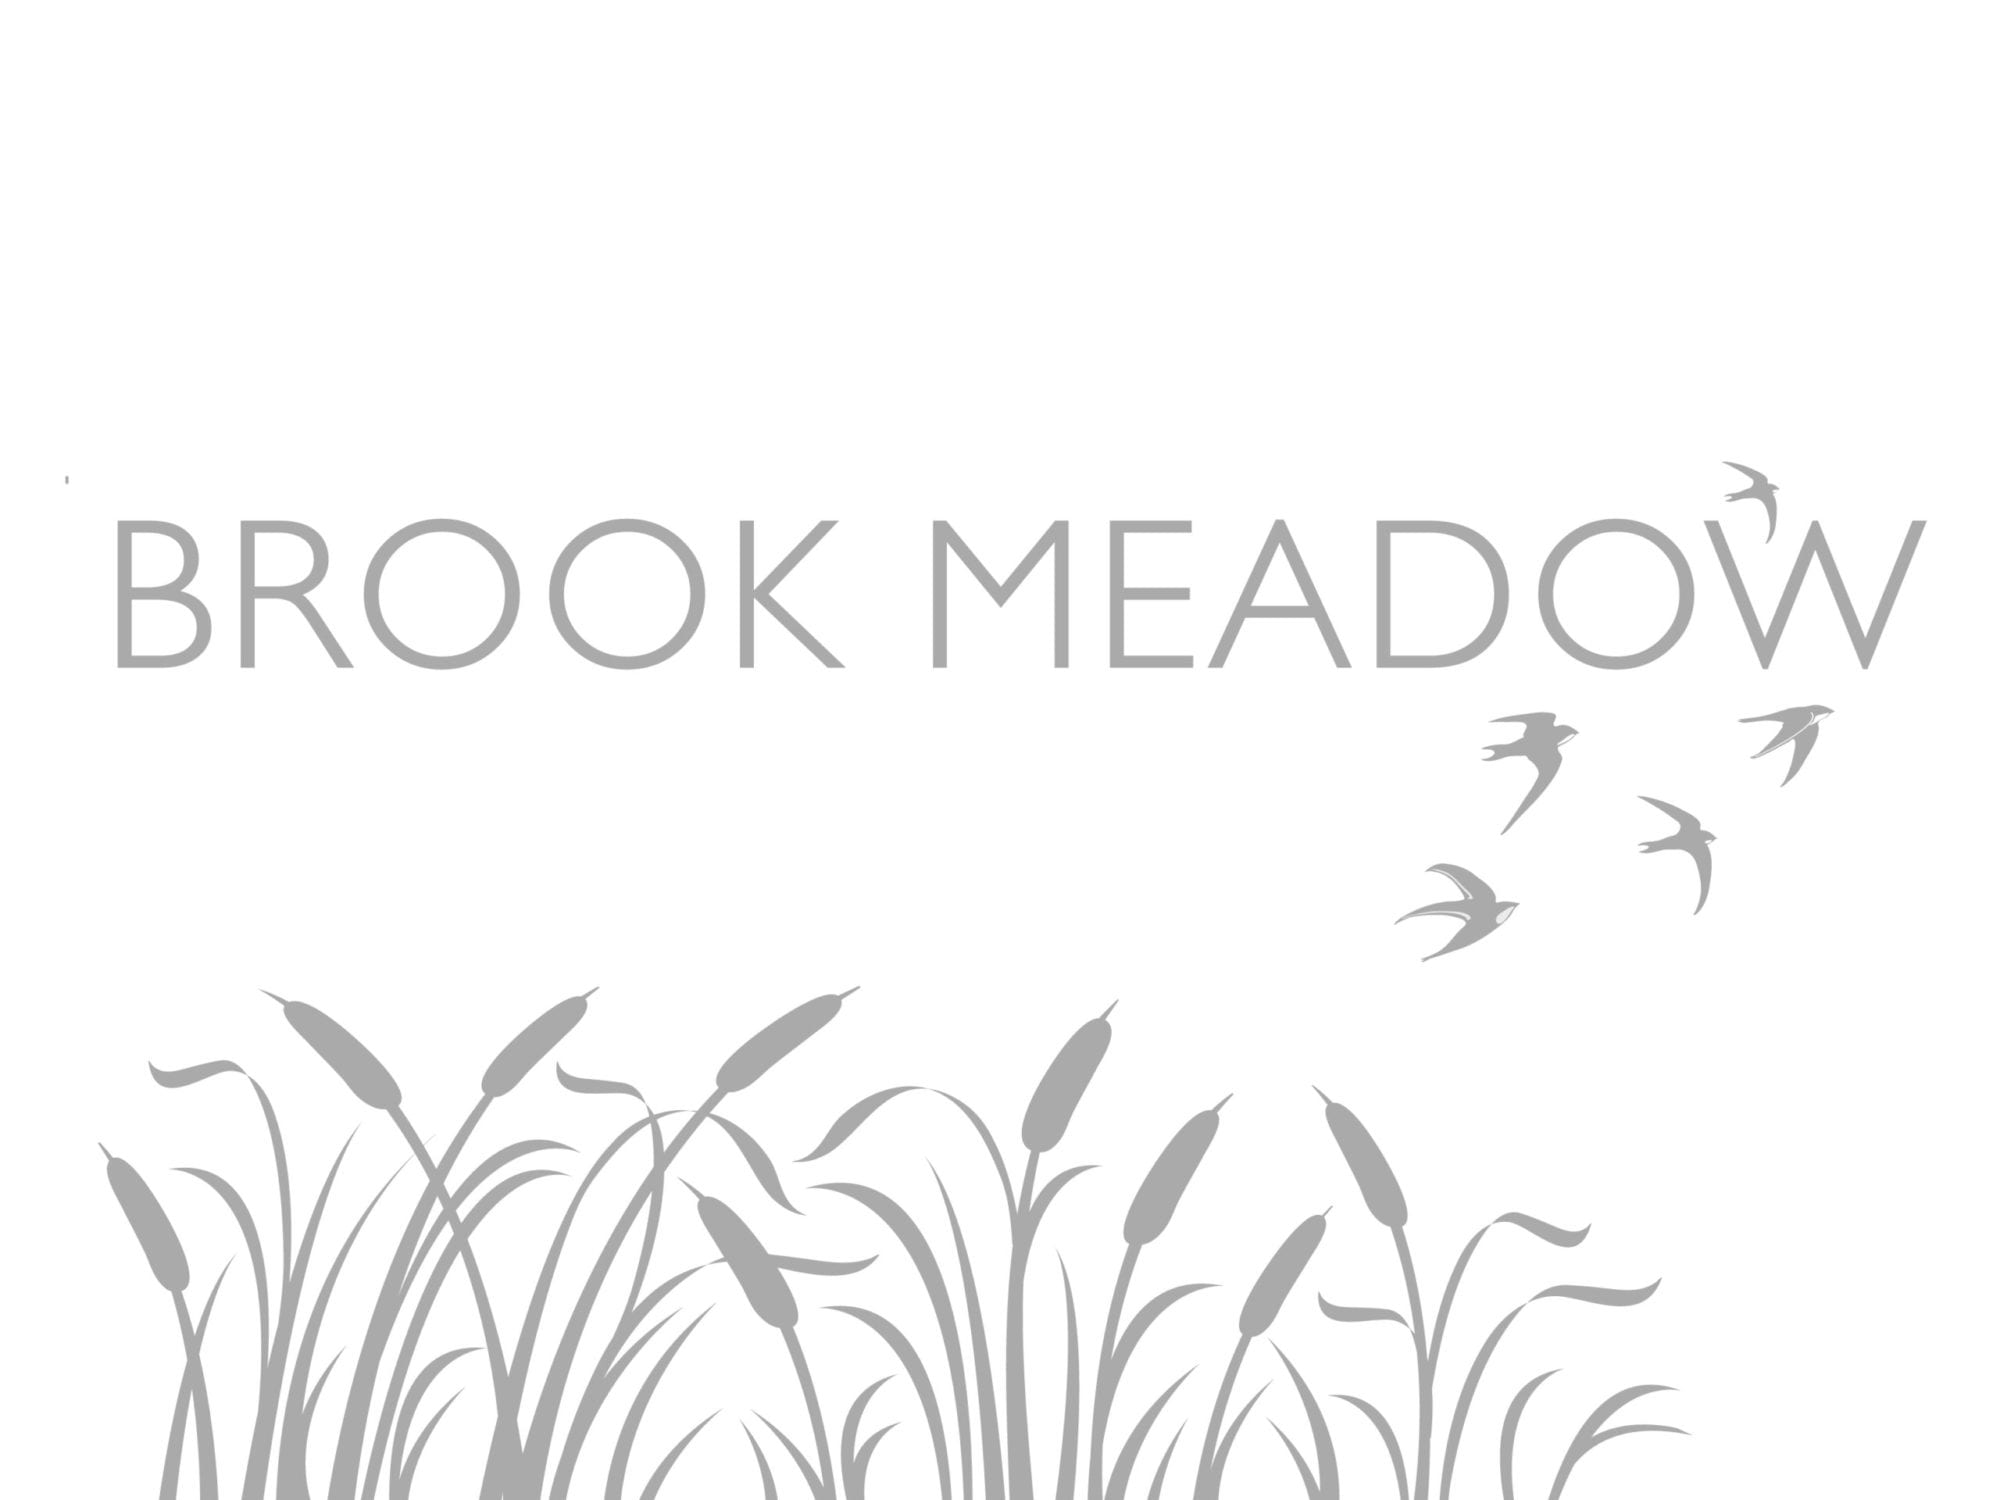 Brook Meadow